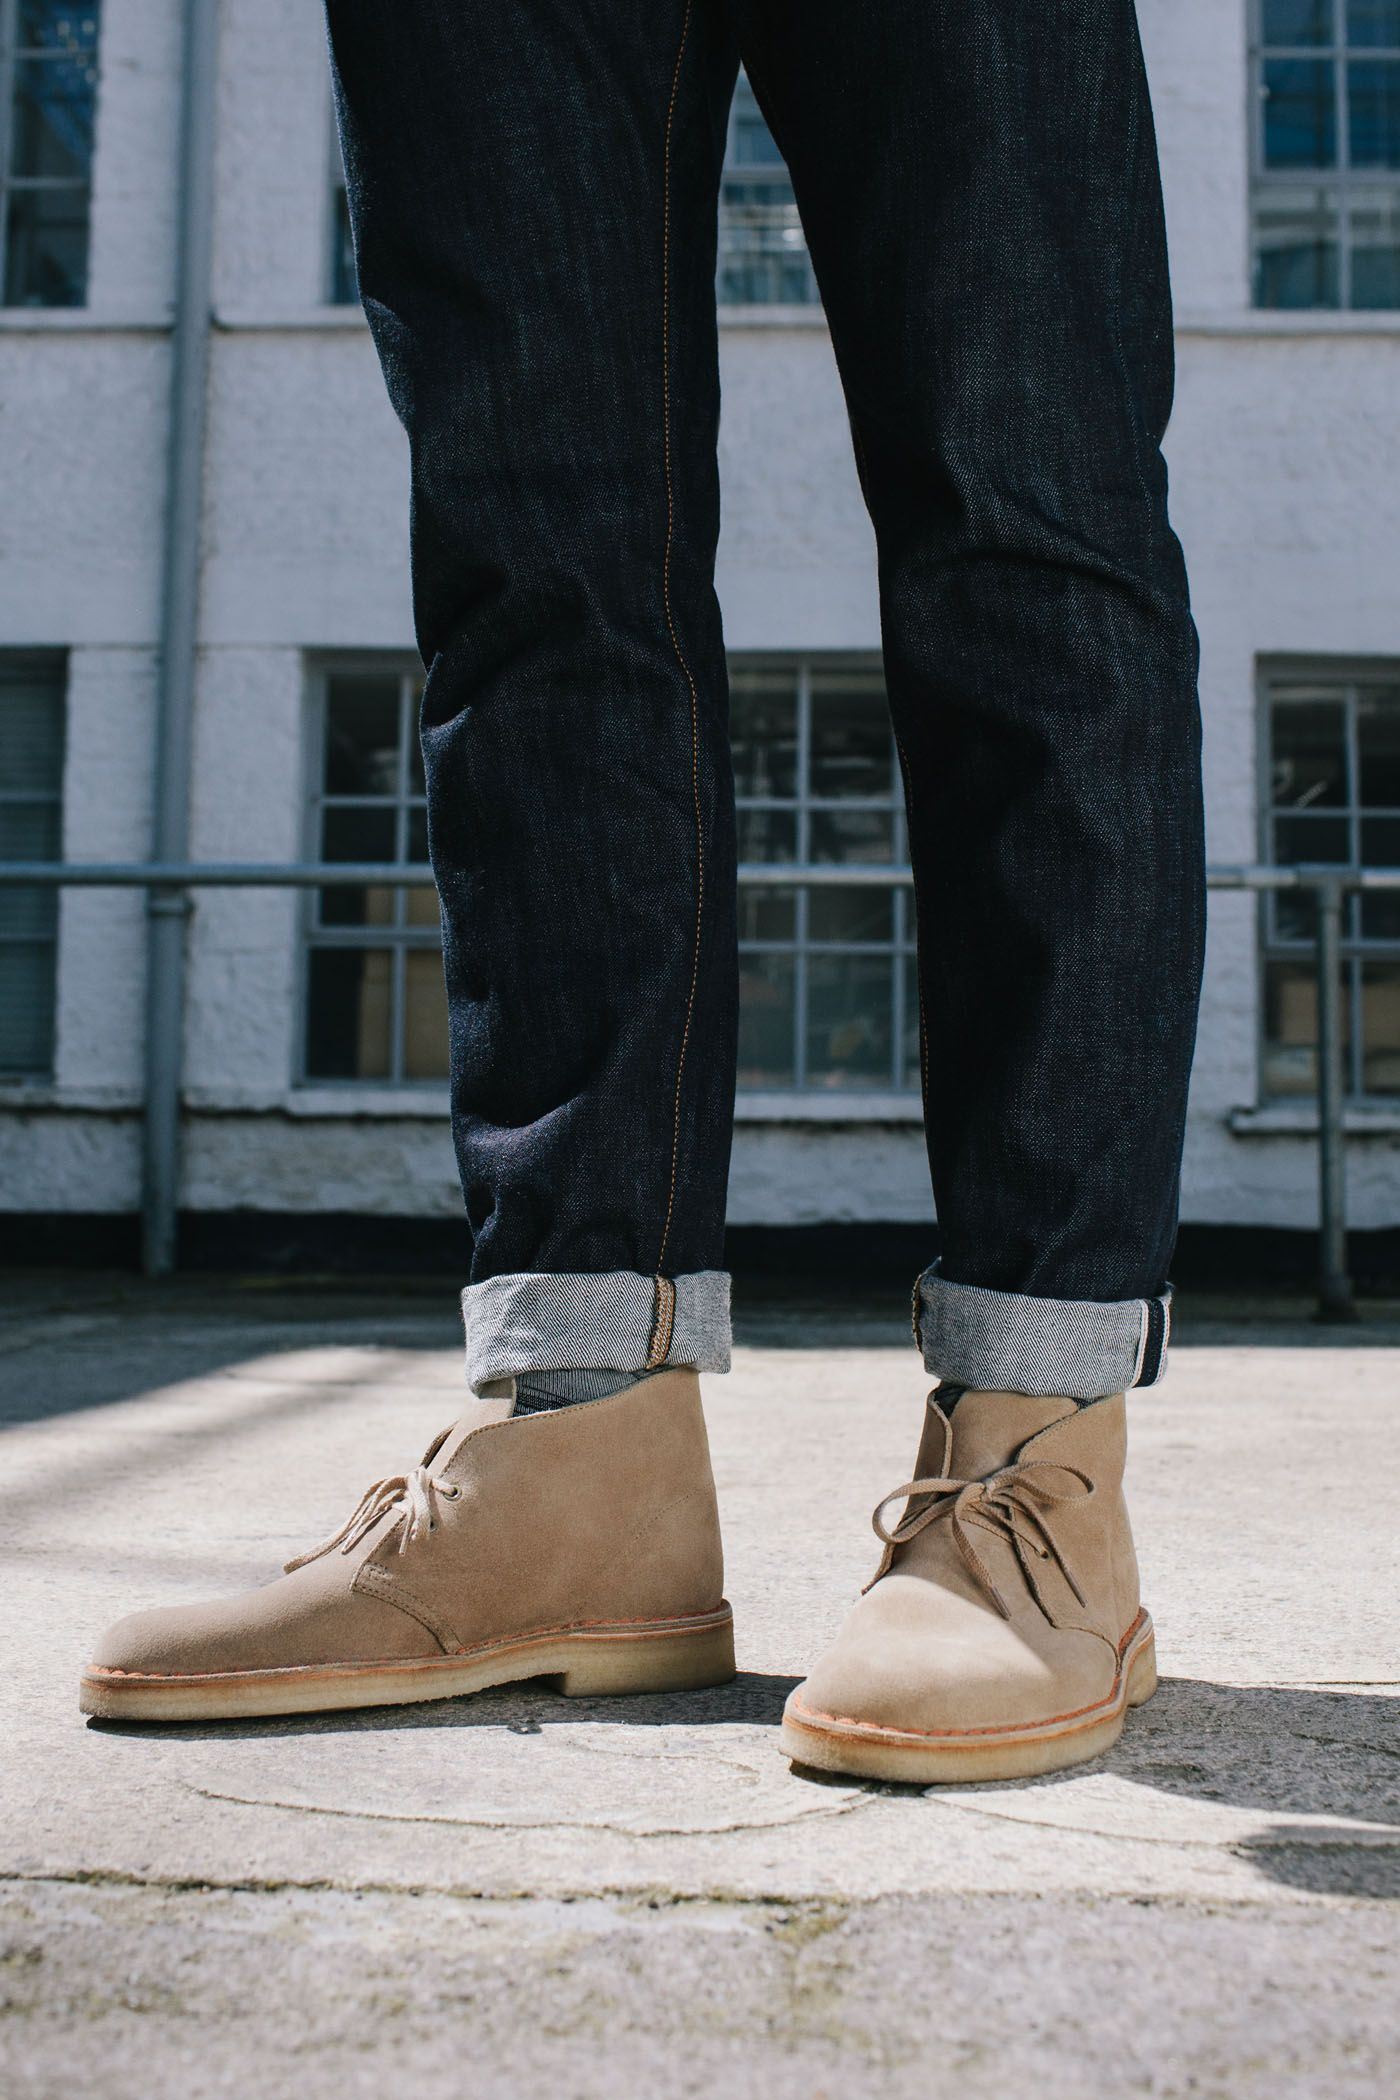 ade777a5 Clarkes Desert Boot in Sand Suede | Men's Fashion in 2019 | Clarks ...